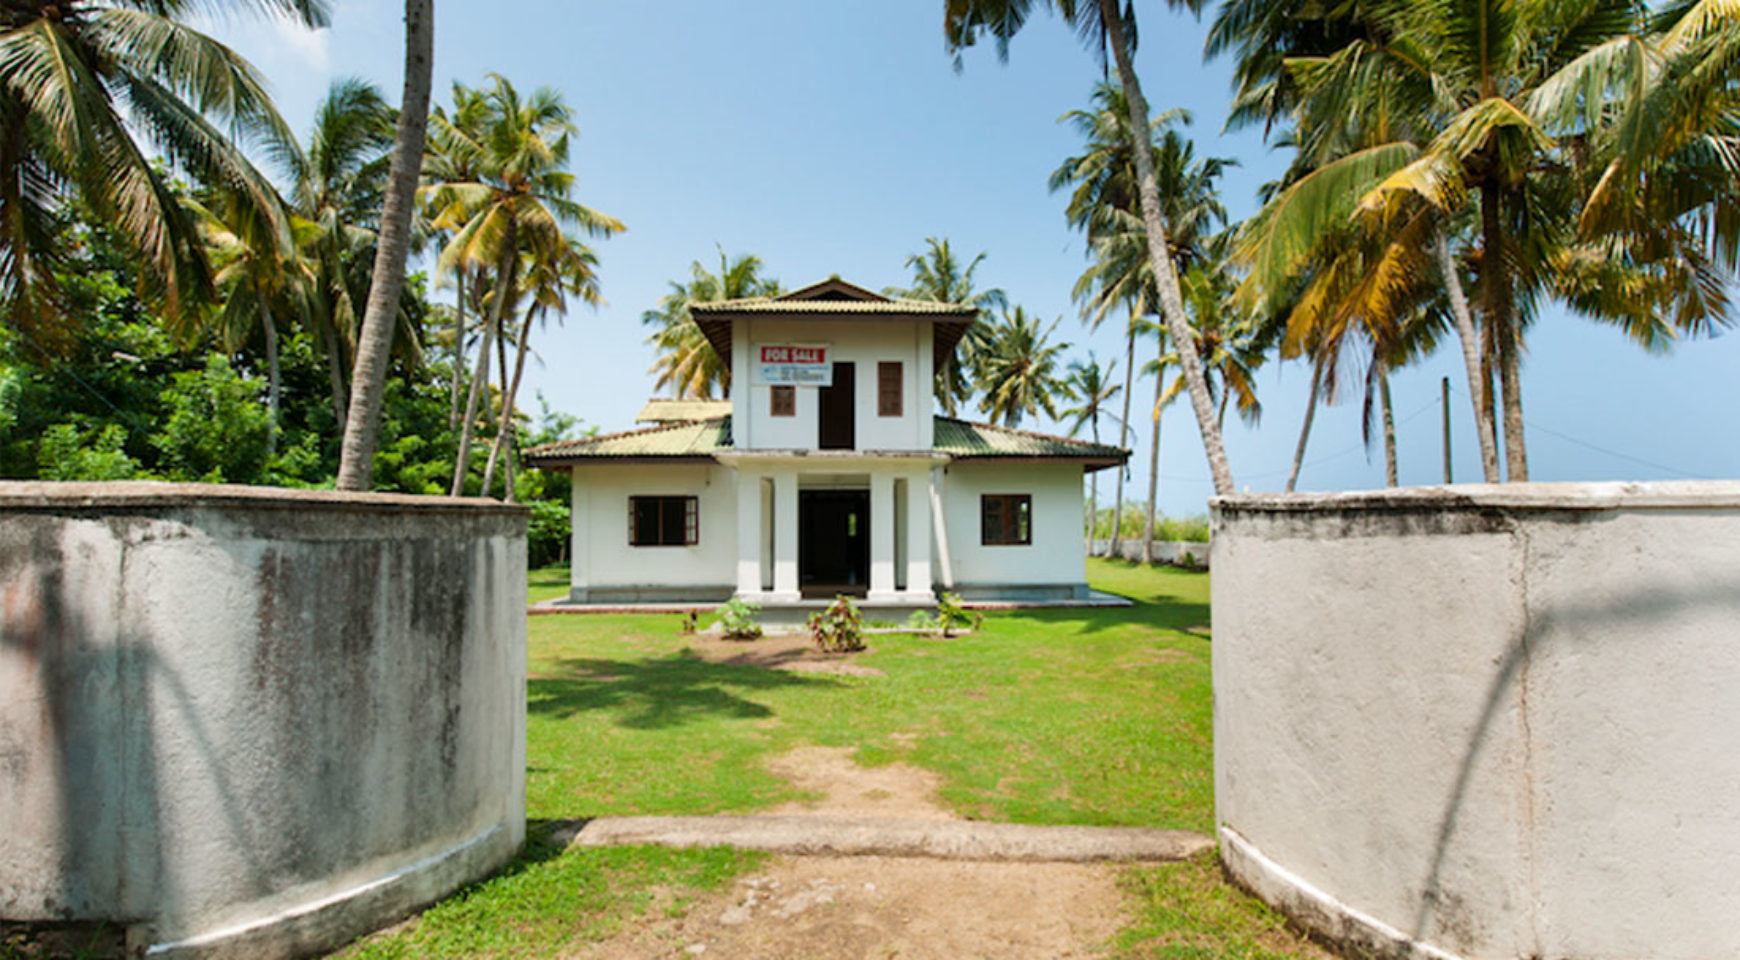 2 bedroom modern house for sale on the beach ceylon for Modern mansions for sale